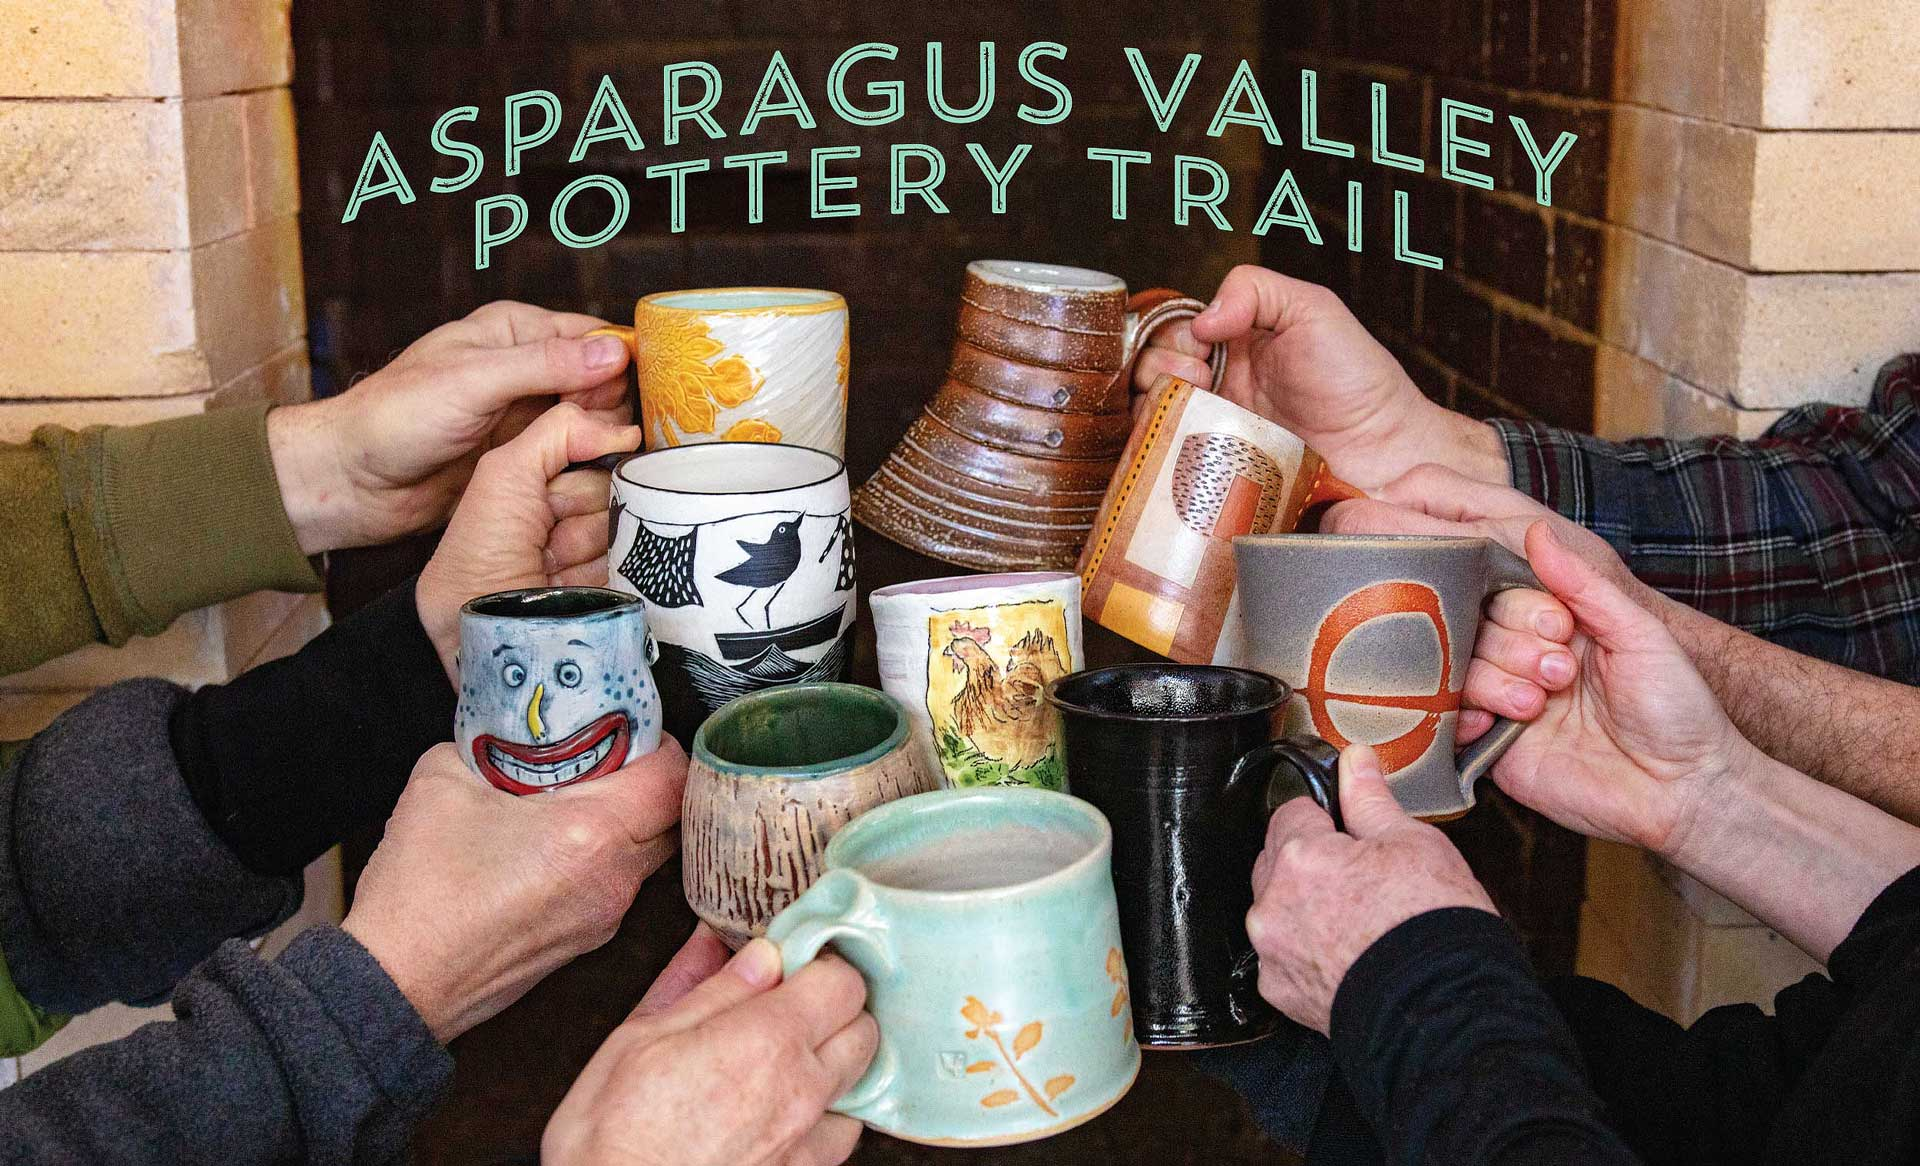 Asparagus valley pottery trail western Massachusetts